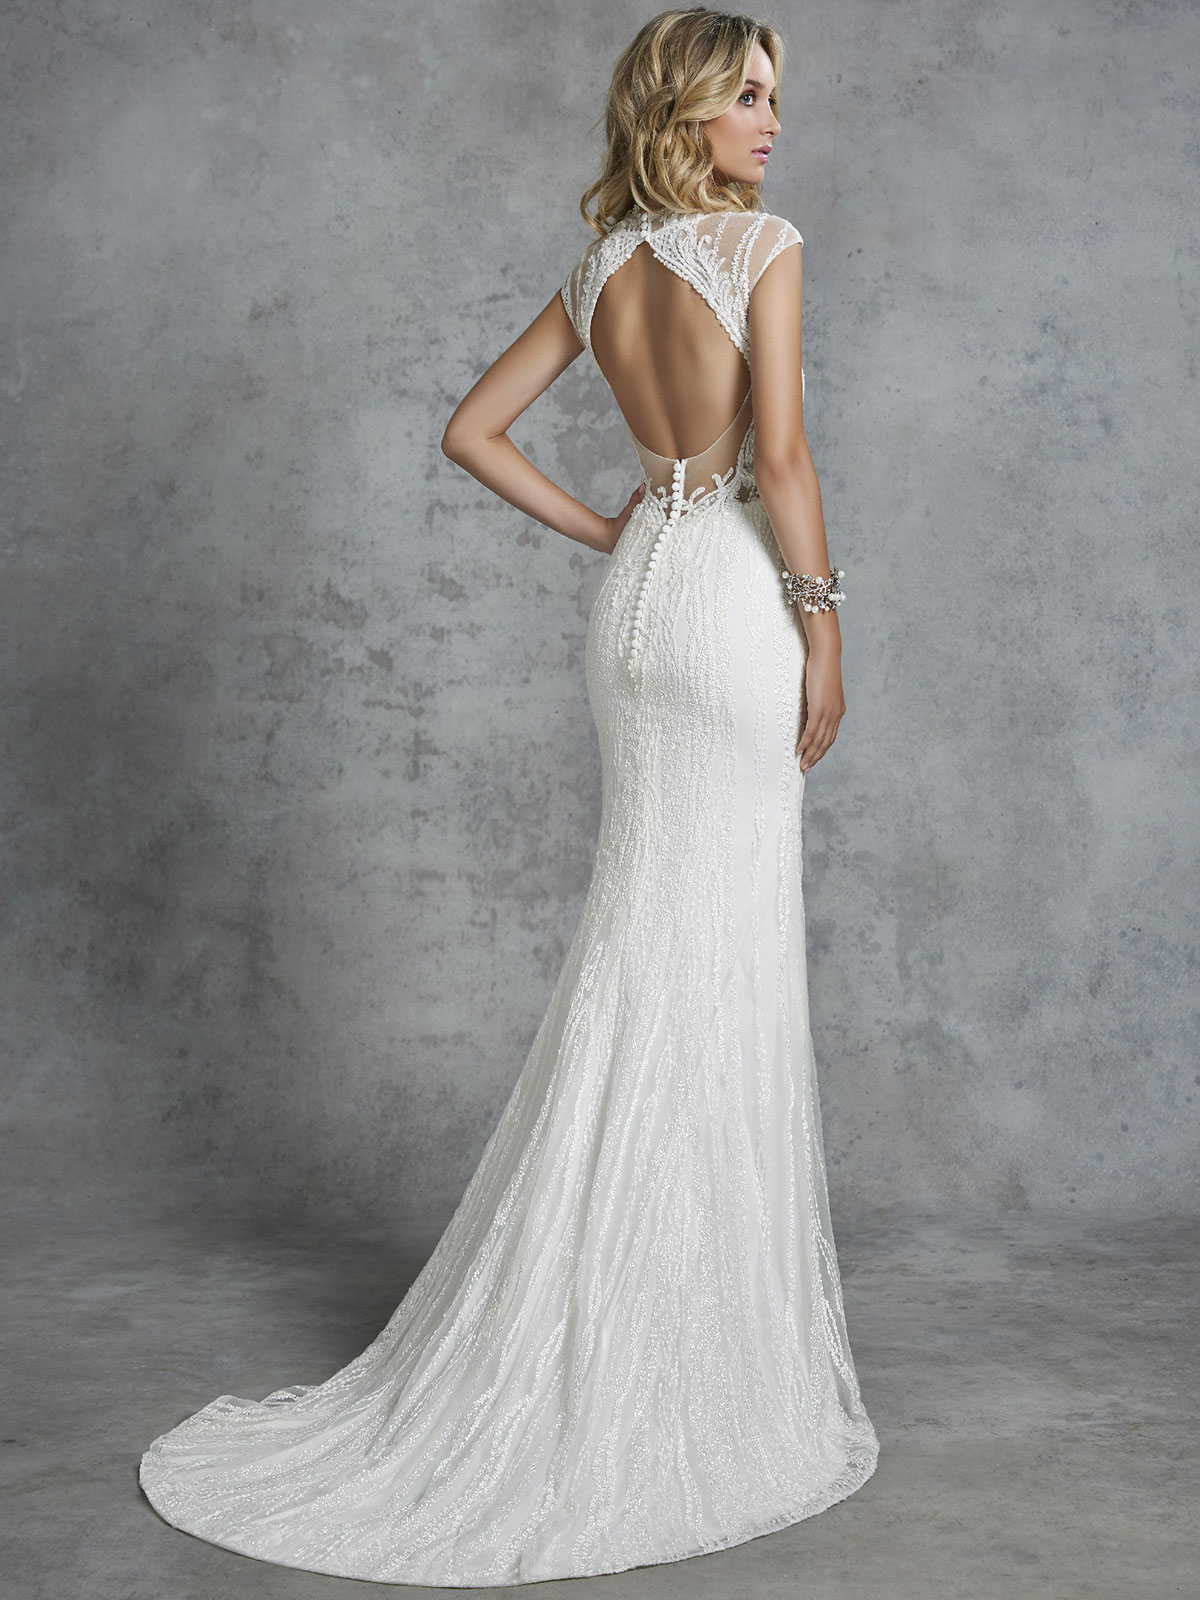 Ronald Joyce - Cornelia Reverse Wedding Gown Leeds